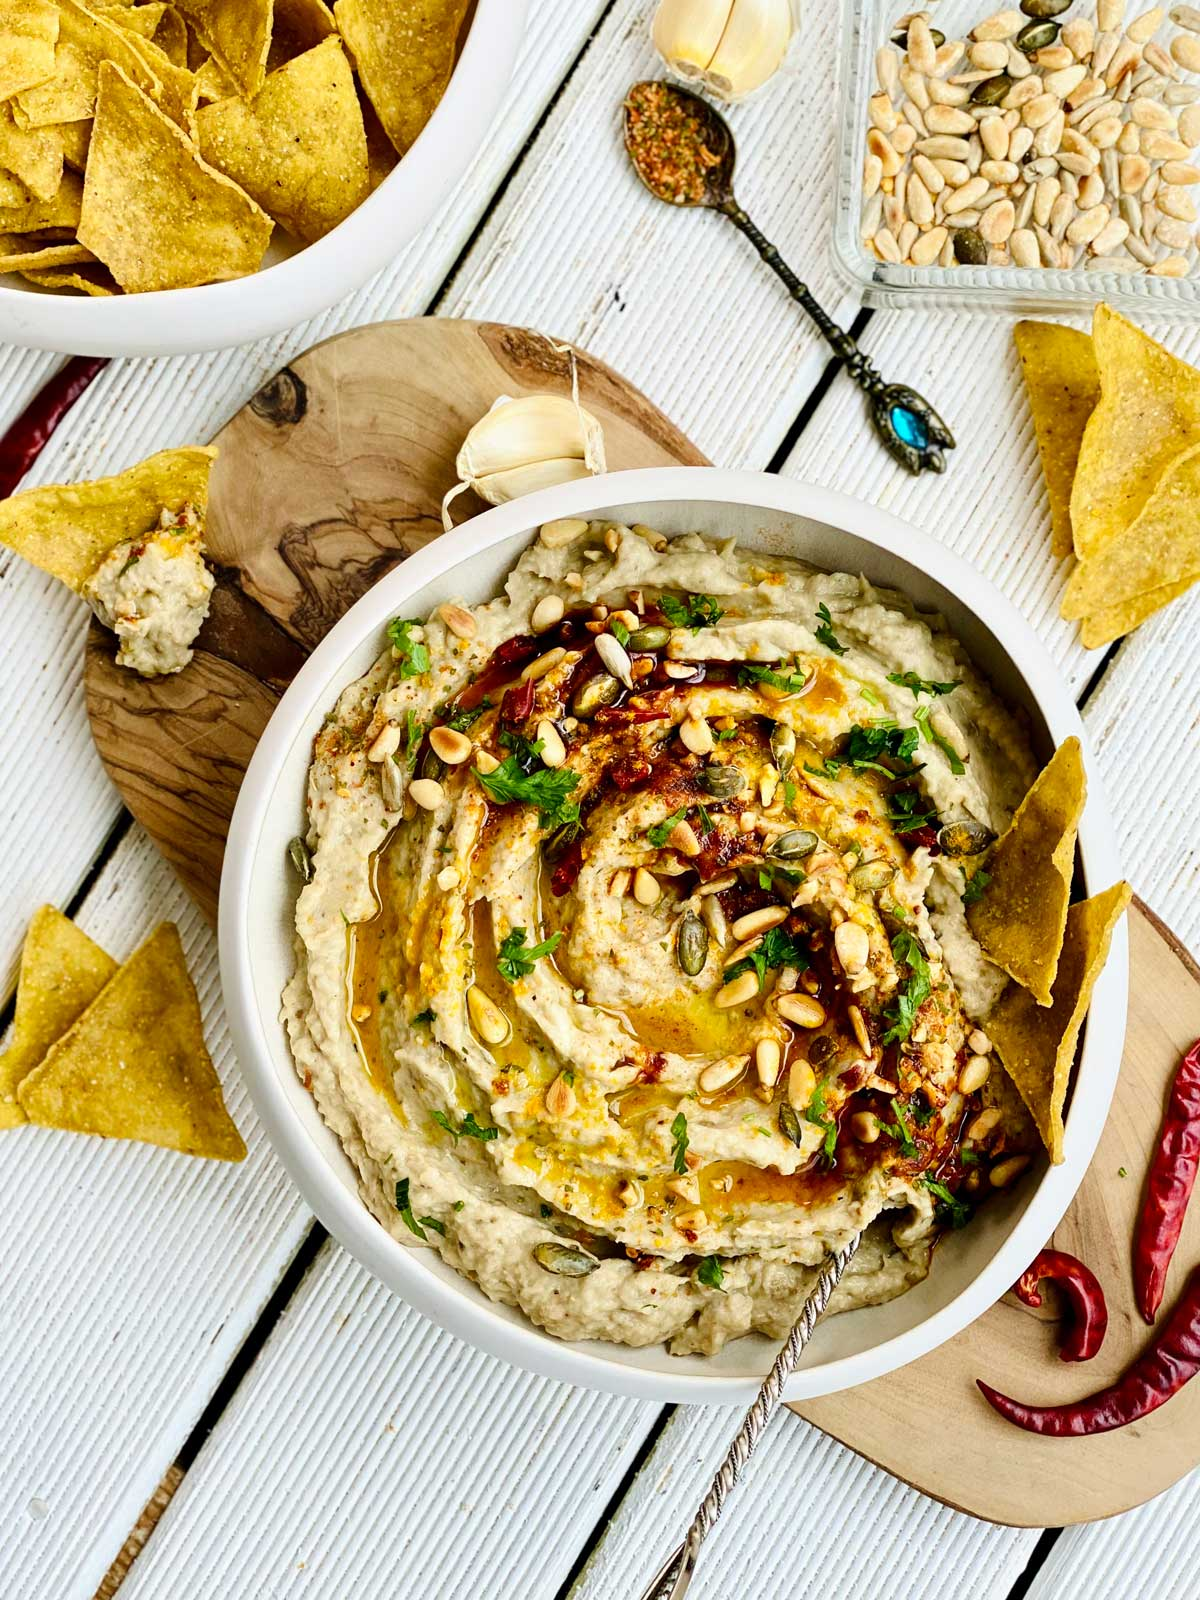 Creamy eggplant dip spread birdsview in an ivory deep plate placed on a wooden board with red chillies and tortilla chips scattered around the sides